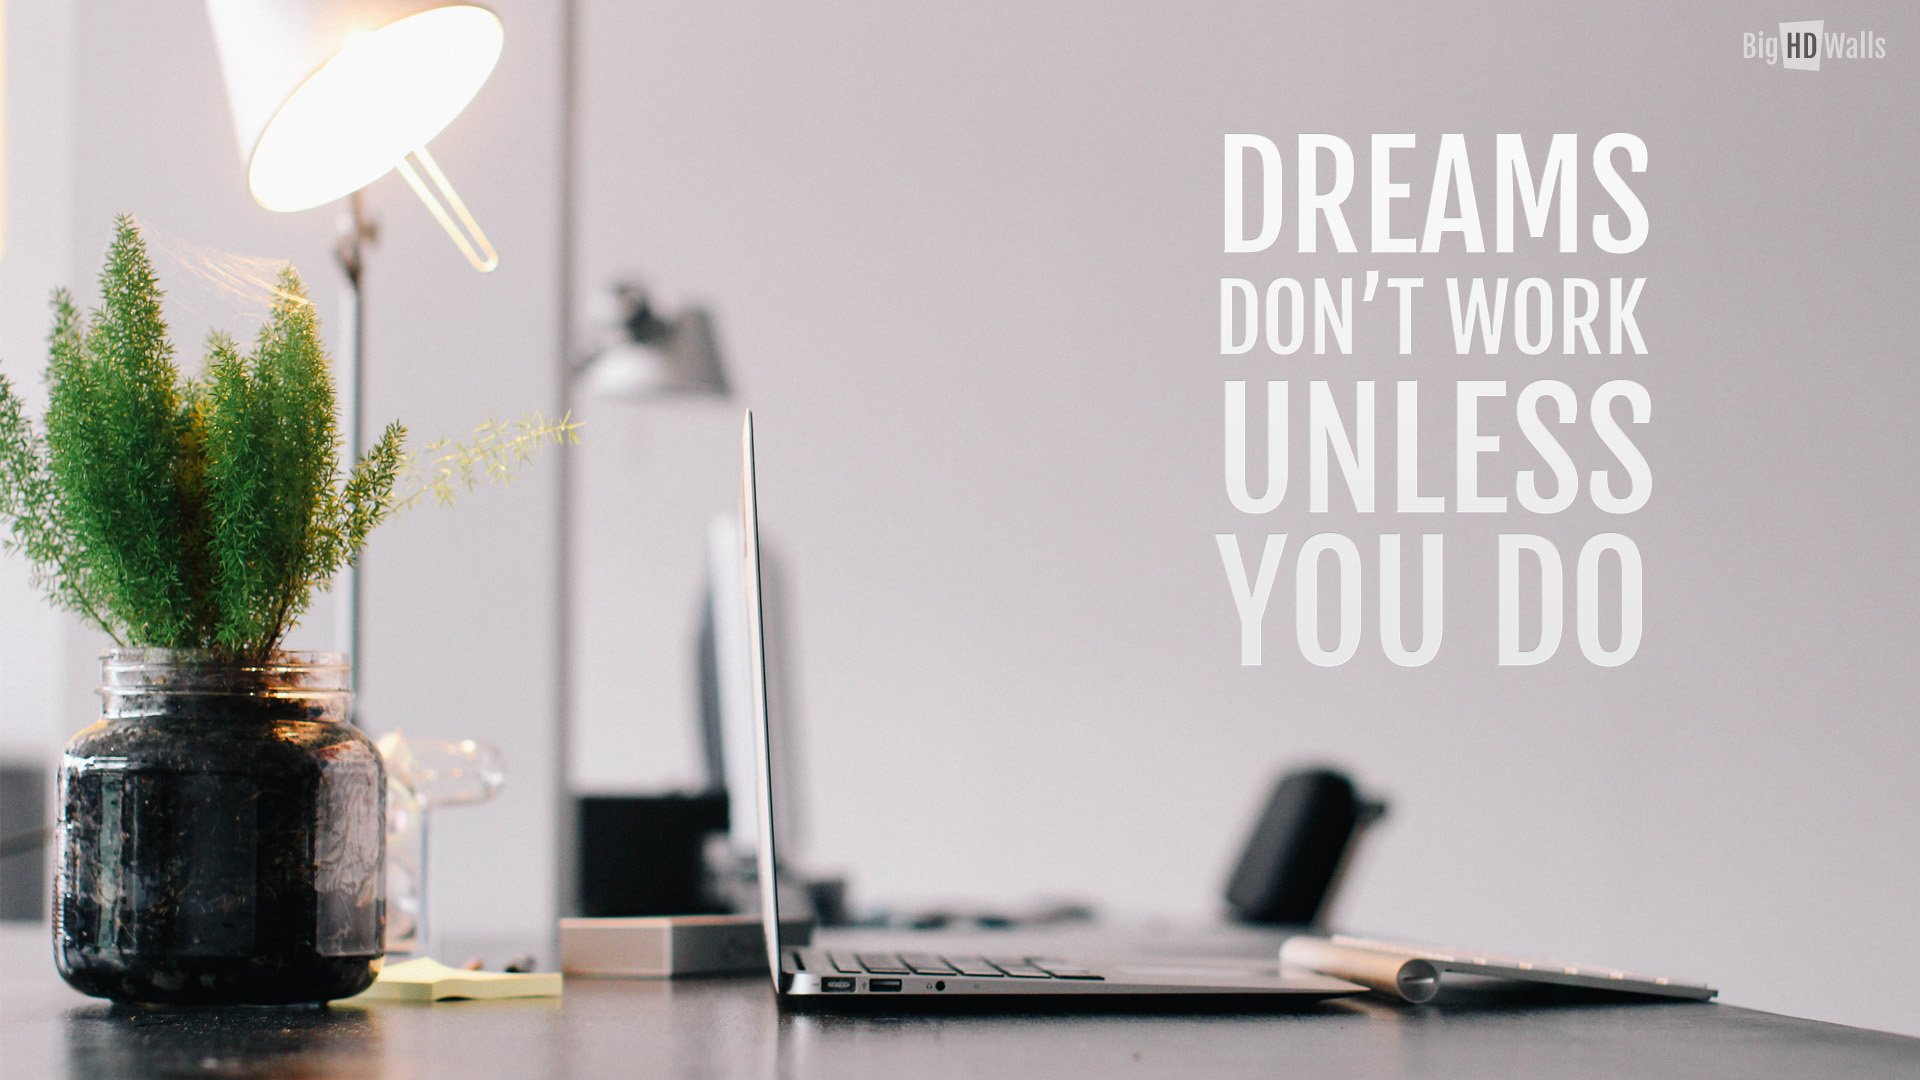 motivational quote about work and dream Click on image to enlarge 1920x1080